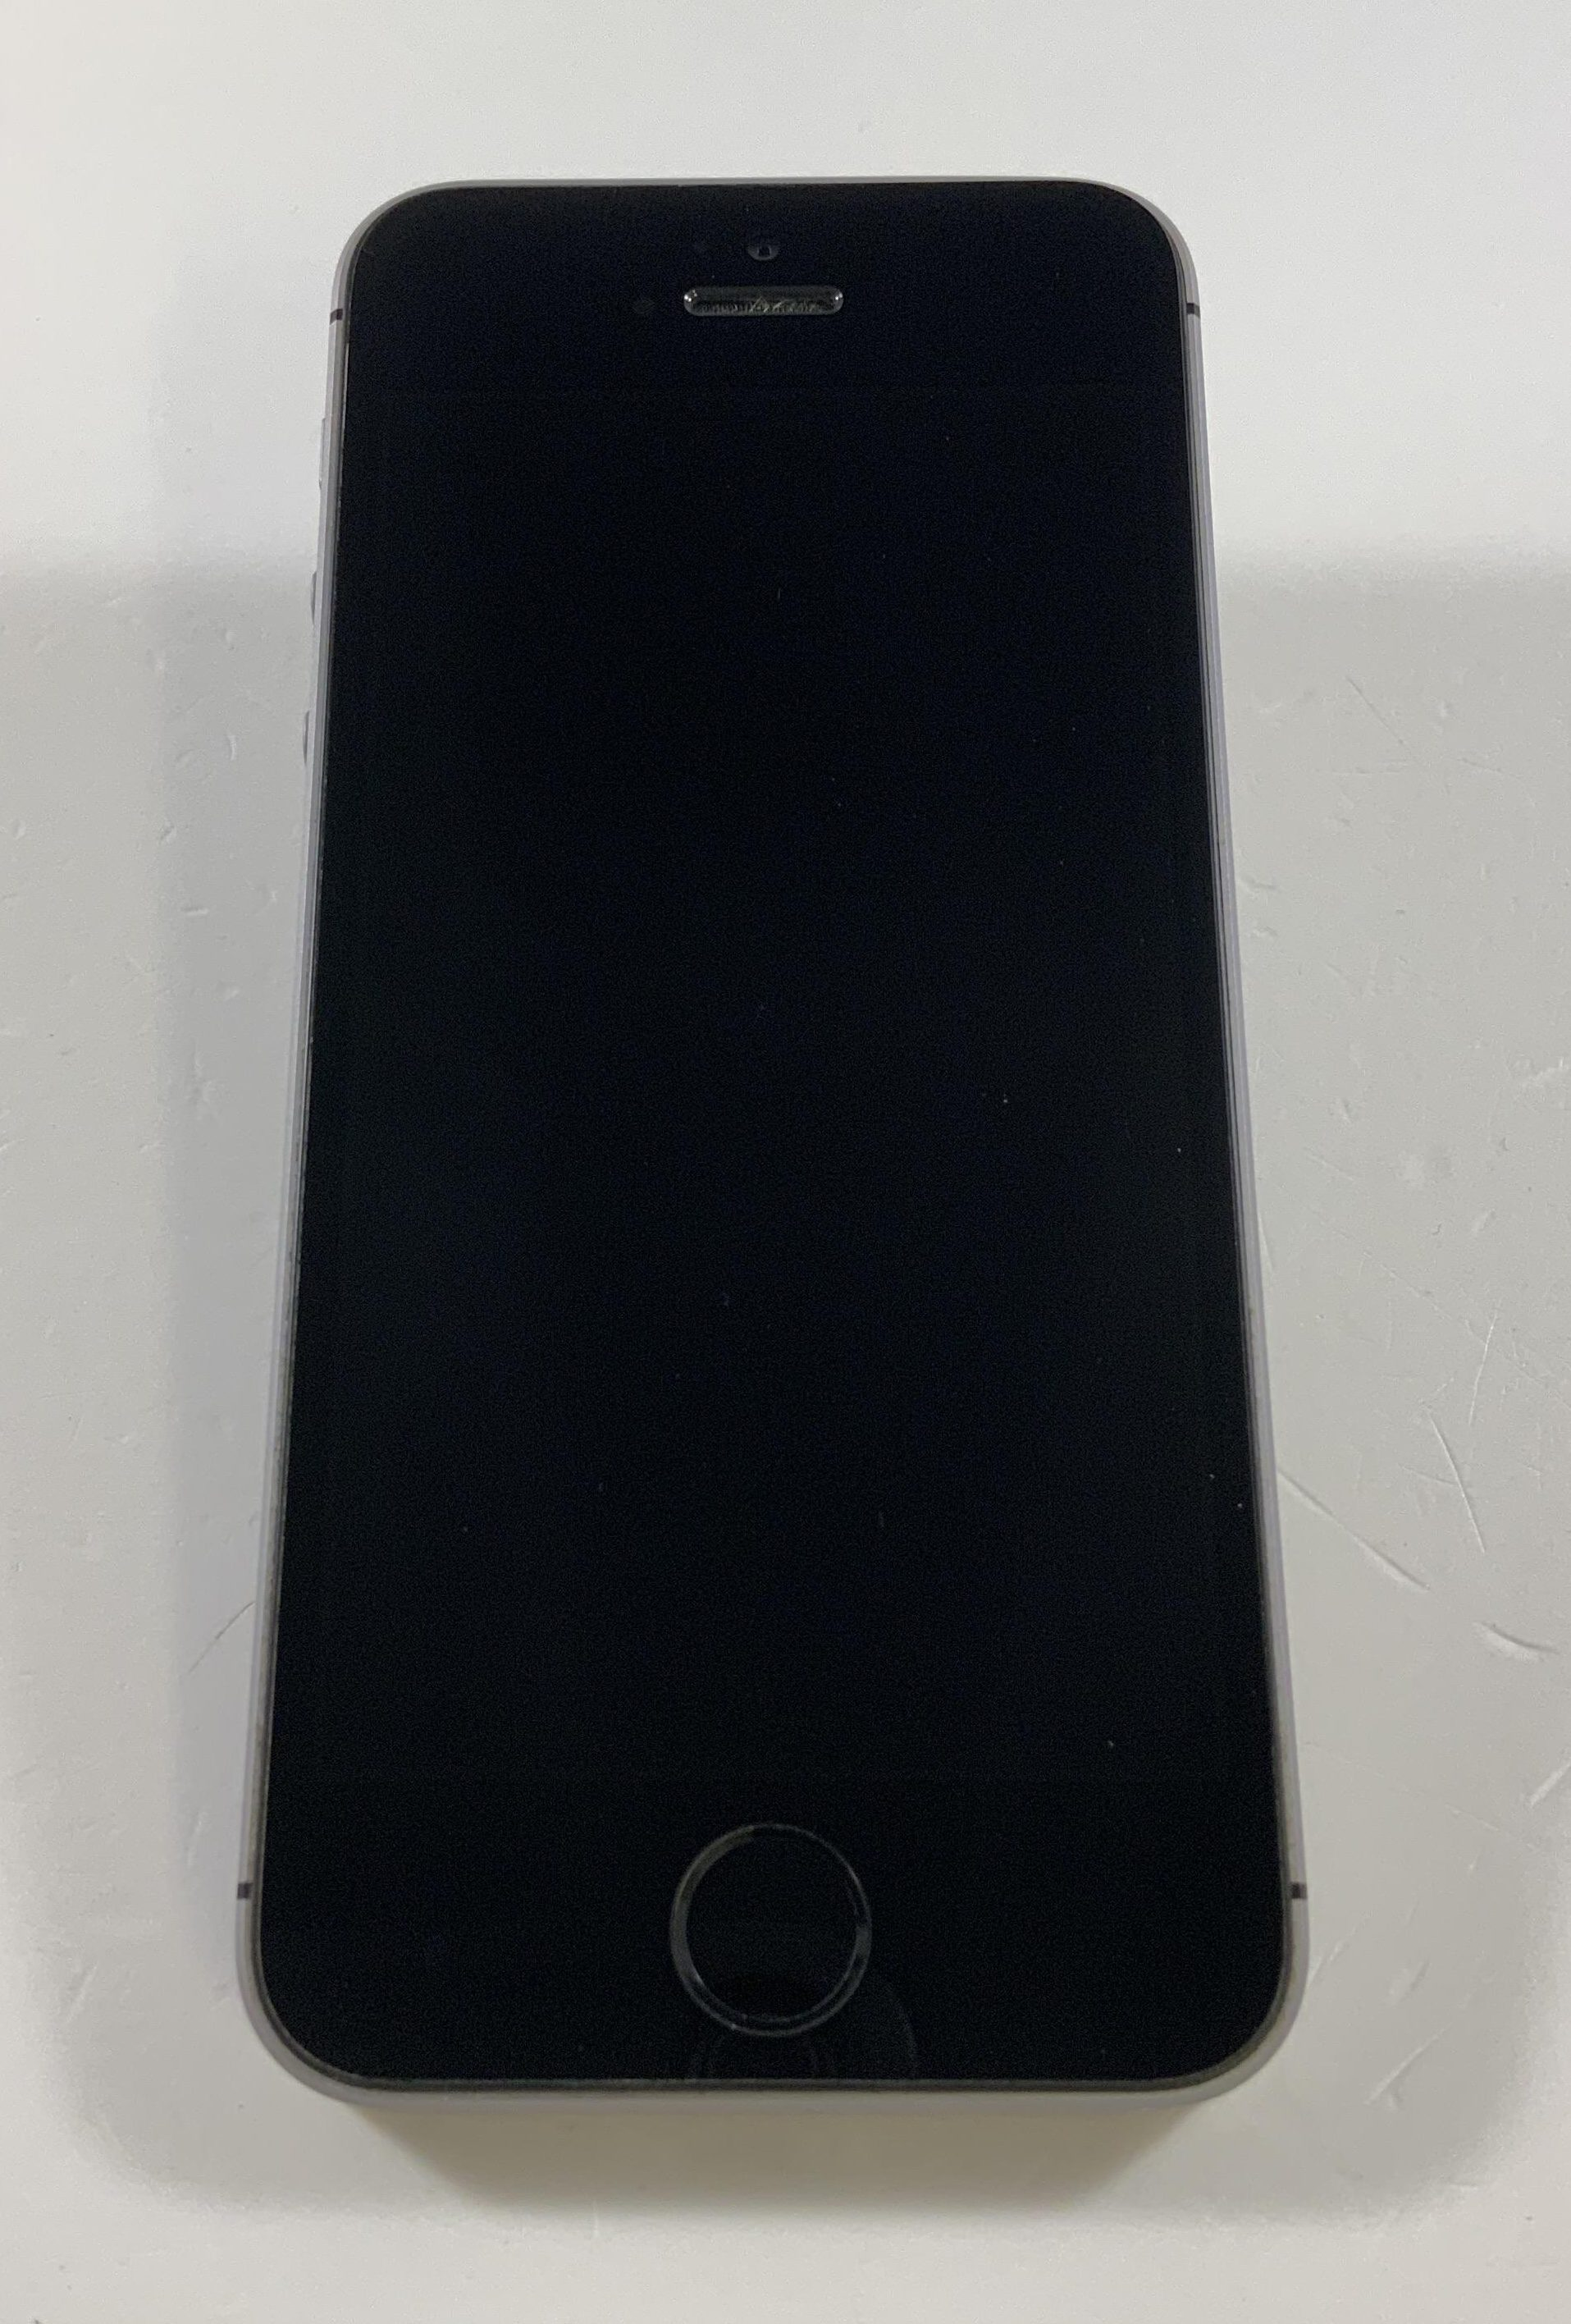 iPhone SE 32GB, 32GB, Space Gray, image 1